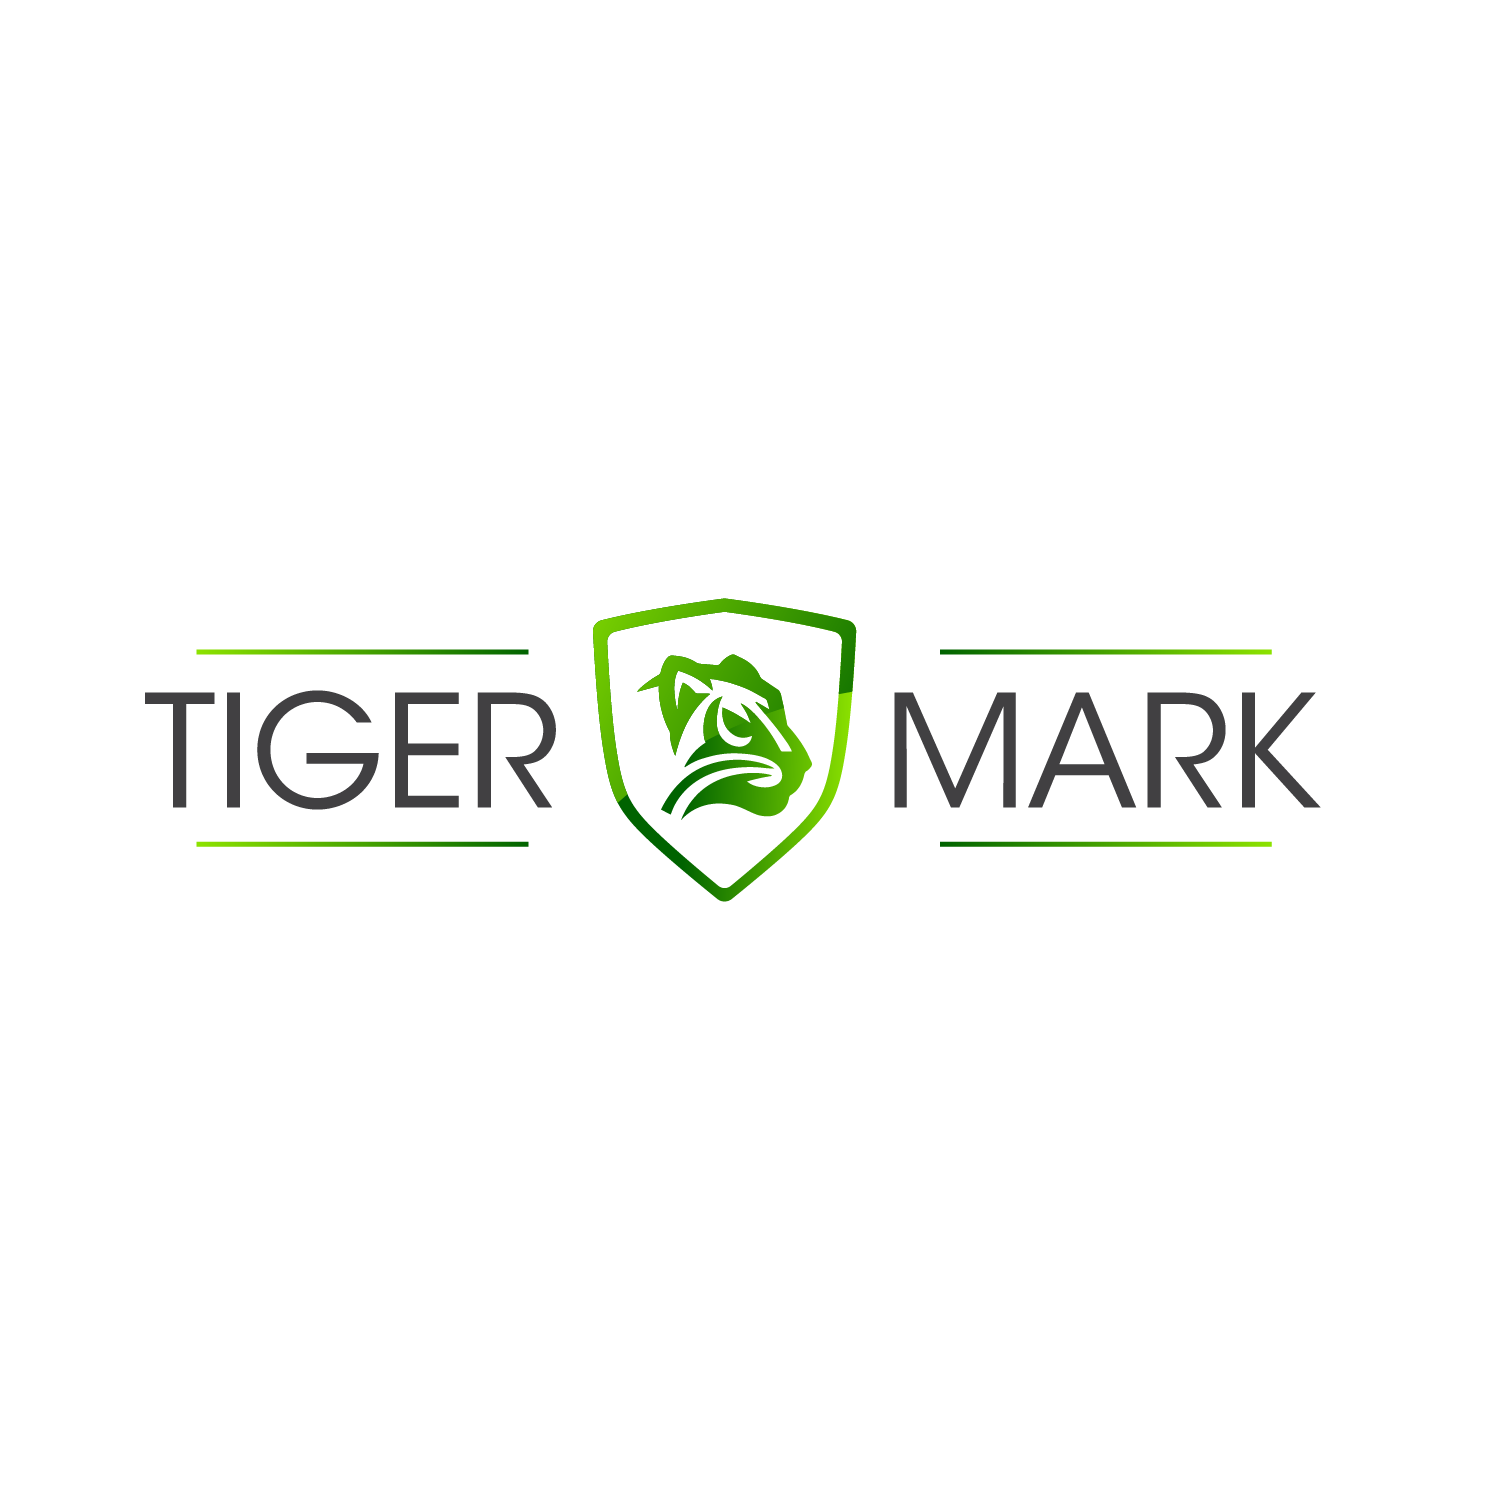 TigerMark-withoutTM-FF-01.png